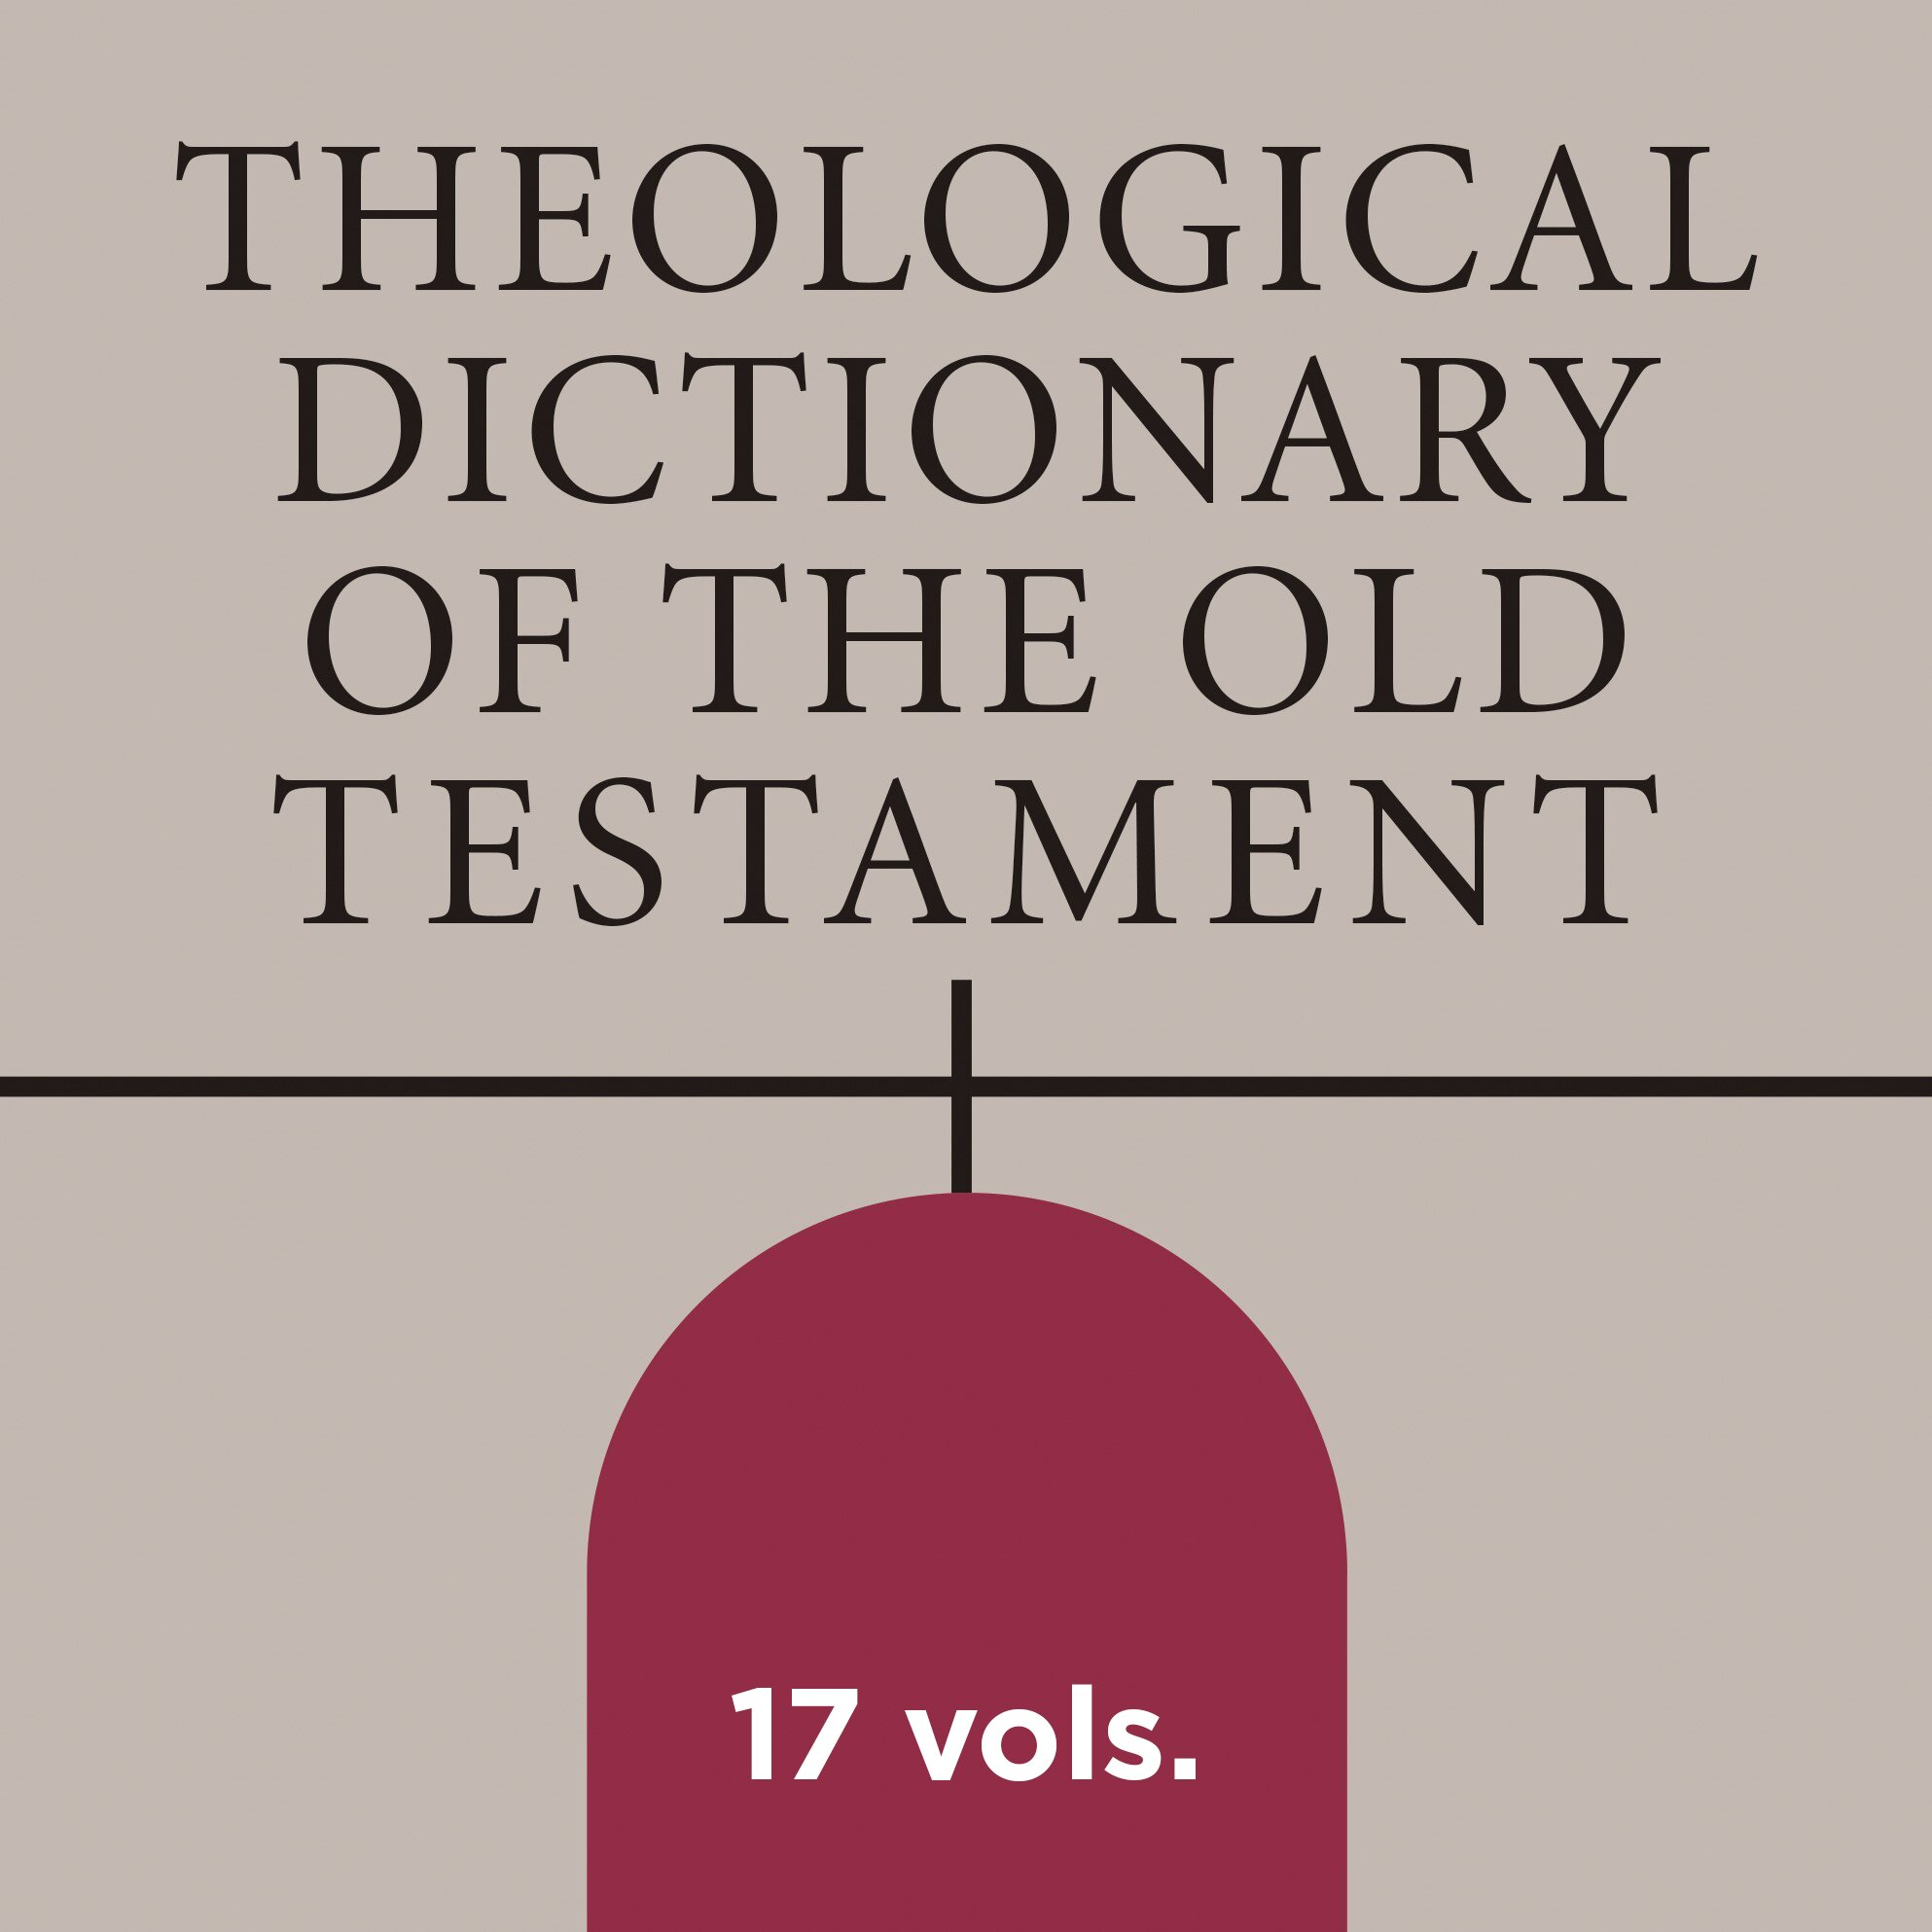 Theological Dictionary of the Old Testament | TDOT (17 vols.)